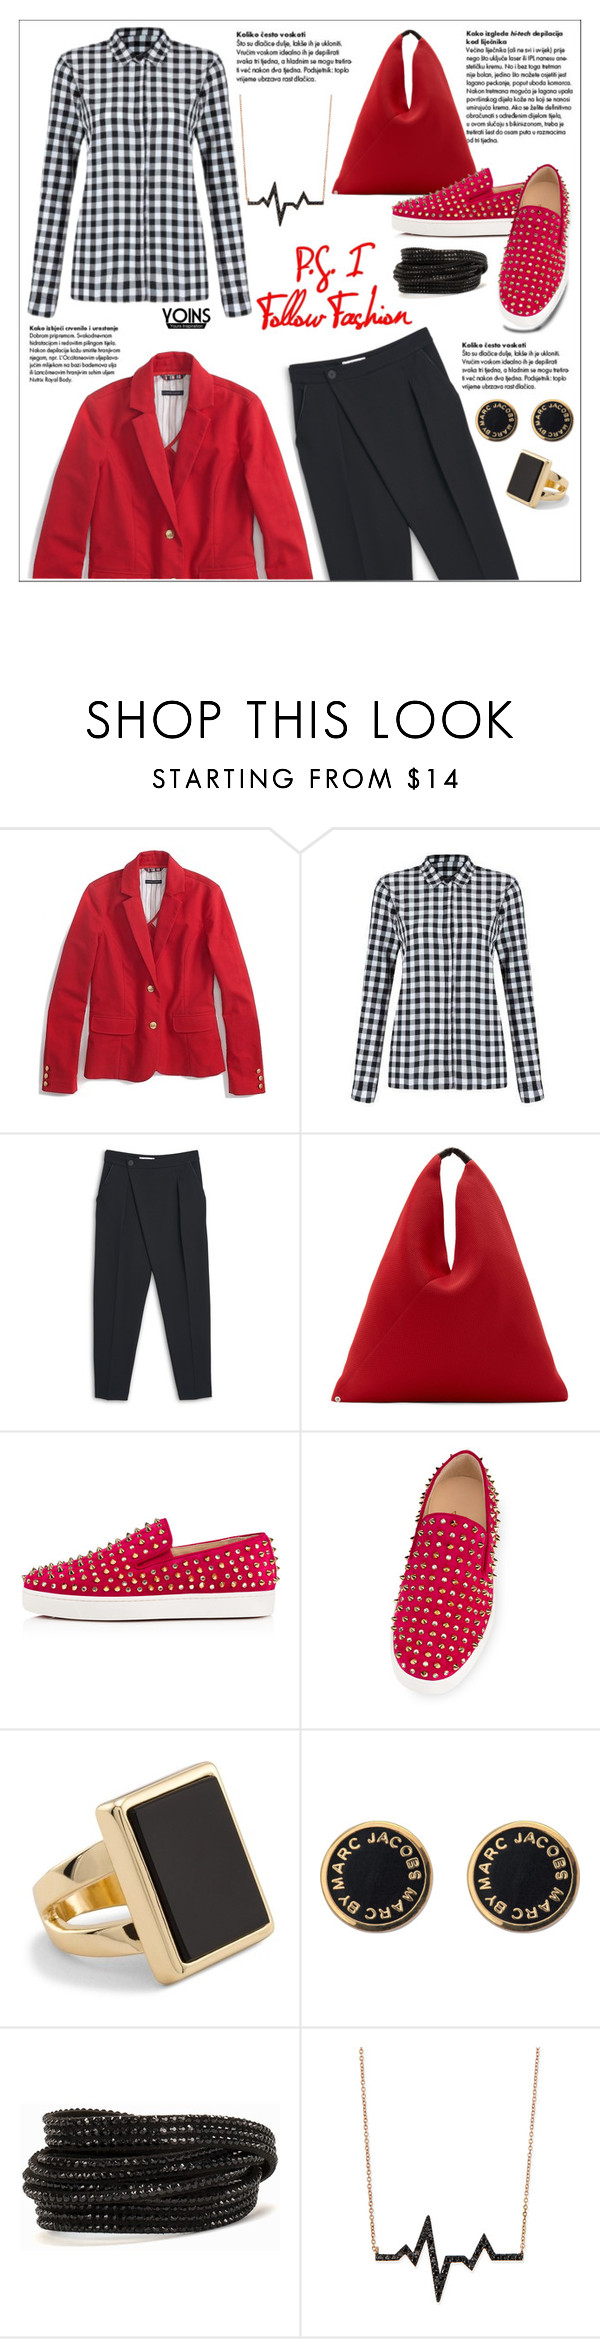 """""""Yoins contest"""" by ceci-alva ❤ liked on Polyvore featuring MANGO, MM6 Maison Margiela, Christian Louboutin, Chico's, Marc by Marc Jacobs, Pieces and Diane Kordas"""